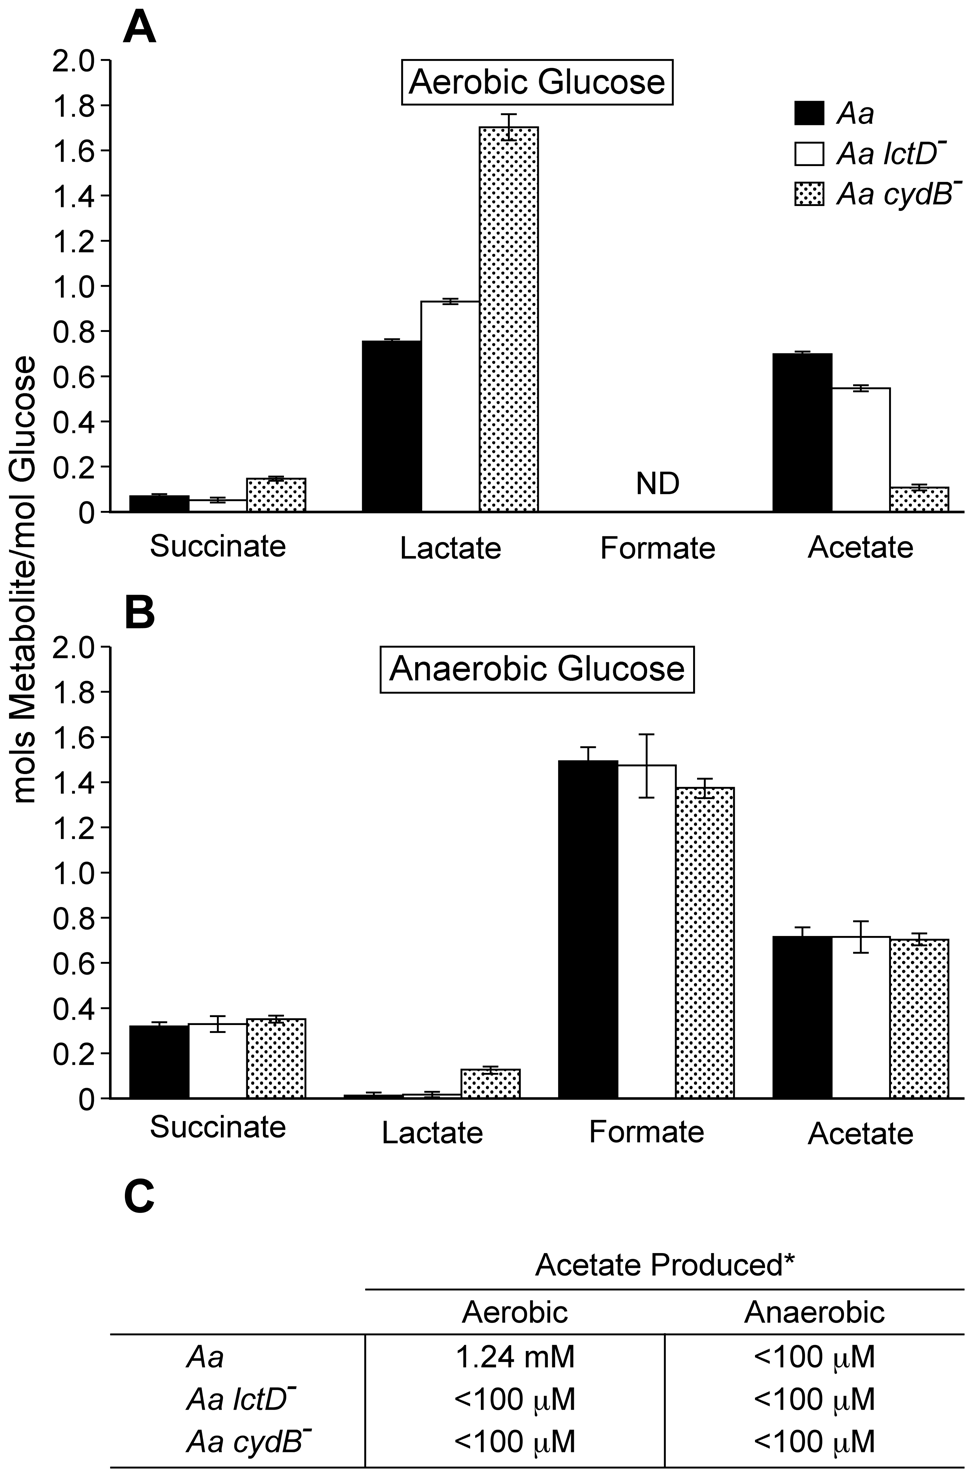 Aerobic and anaerobic metabolites produced by <i>A. actinomycetemcomitans</i>, <i>A. actinomycetemcomitans lctD</i><sup>-</sup> and <i>A. actinomycetemcomitans cydB</i><sup>-</sup>.